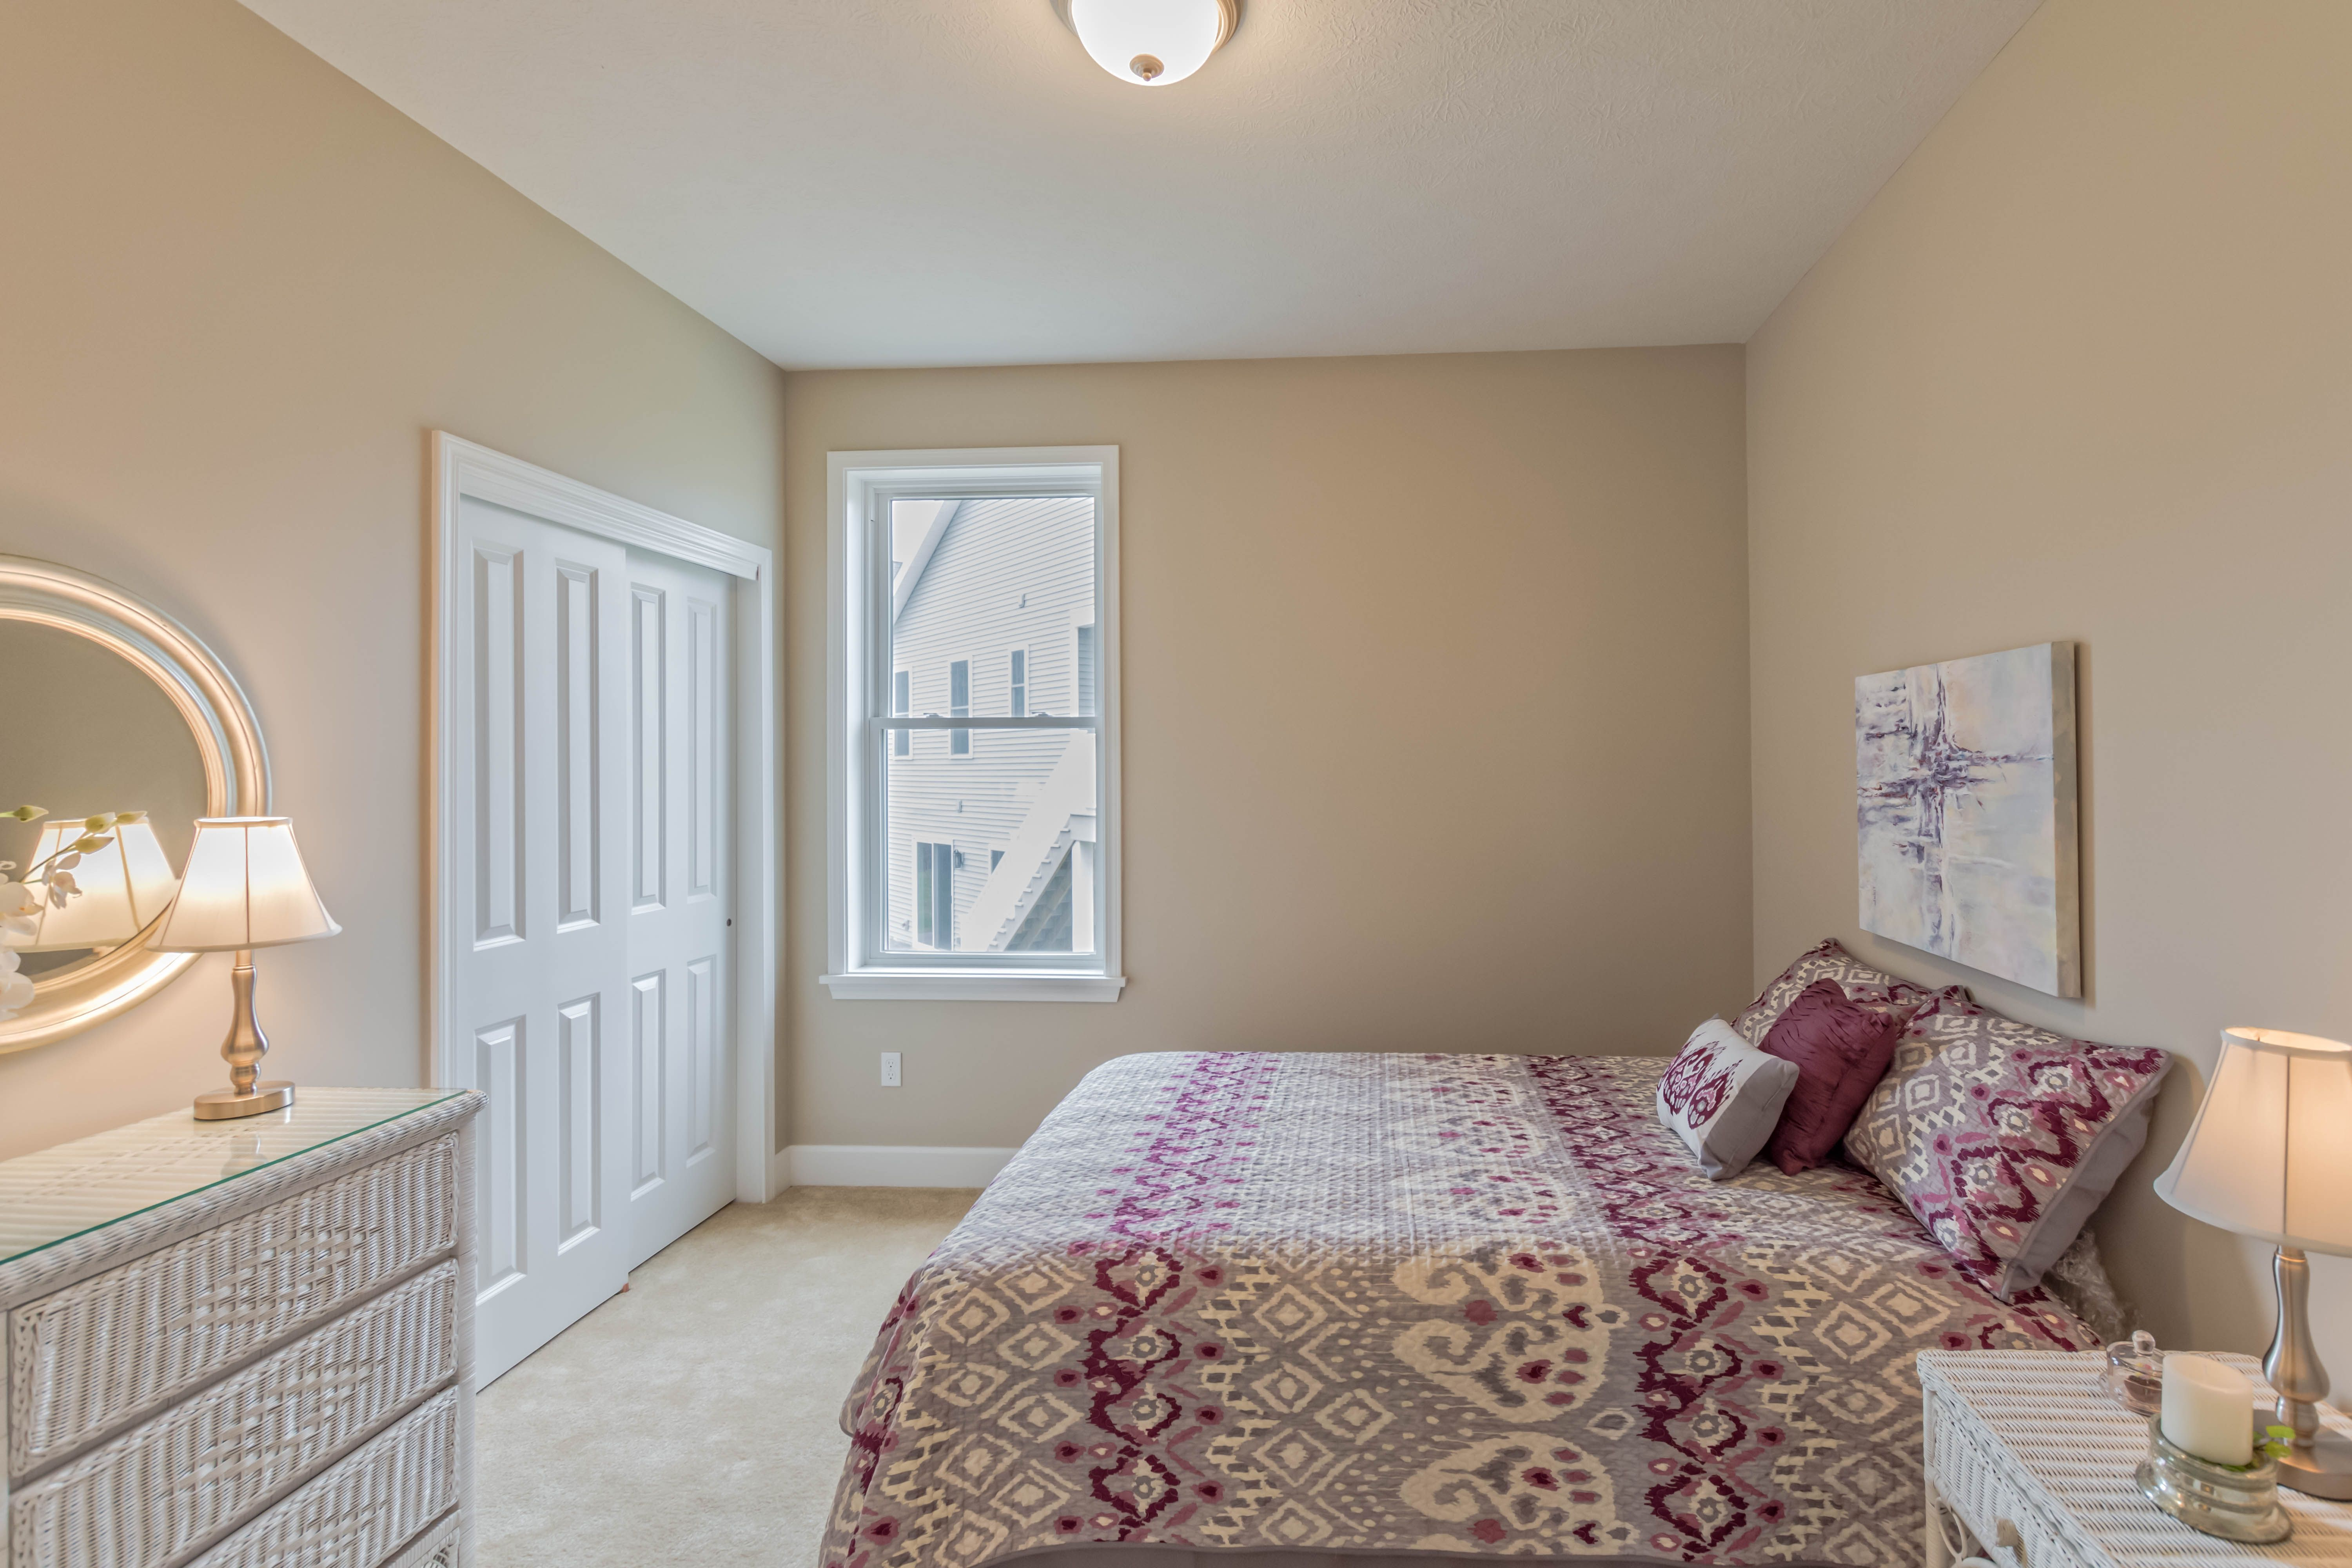 Bedroom featured in The Kingston By Riedman Homes in Elmira, NY